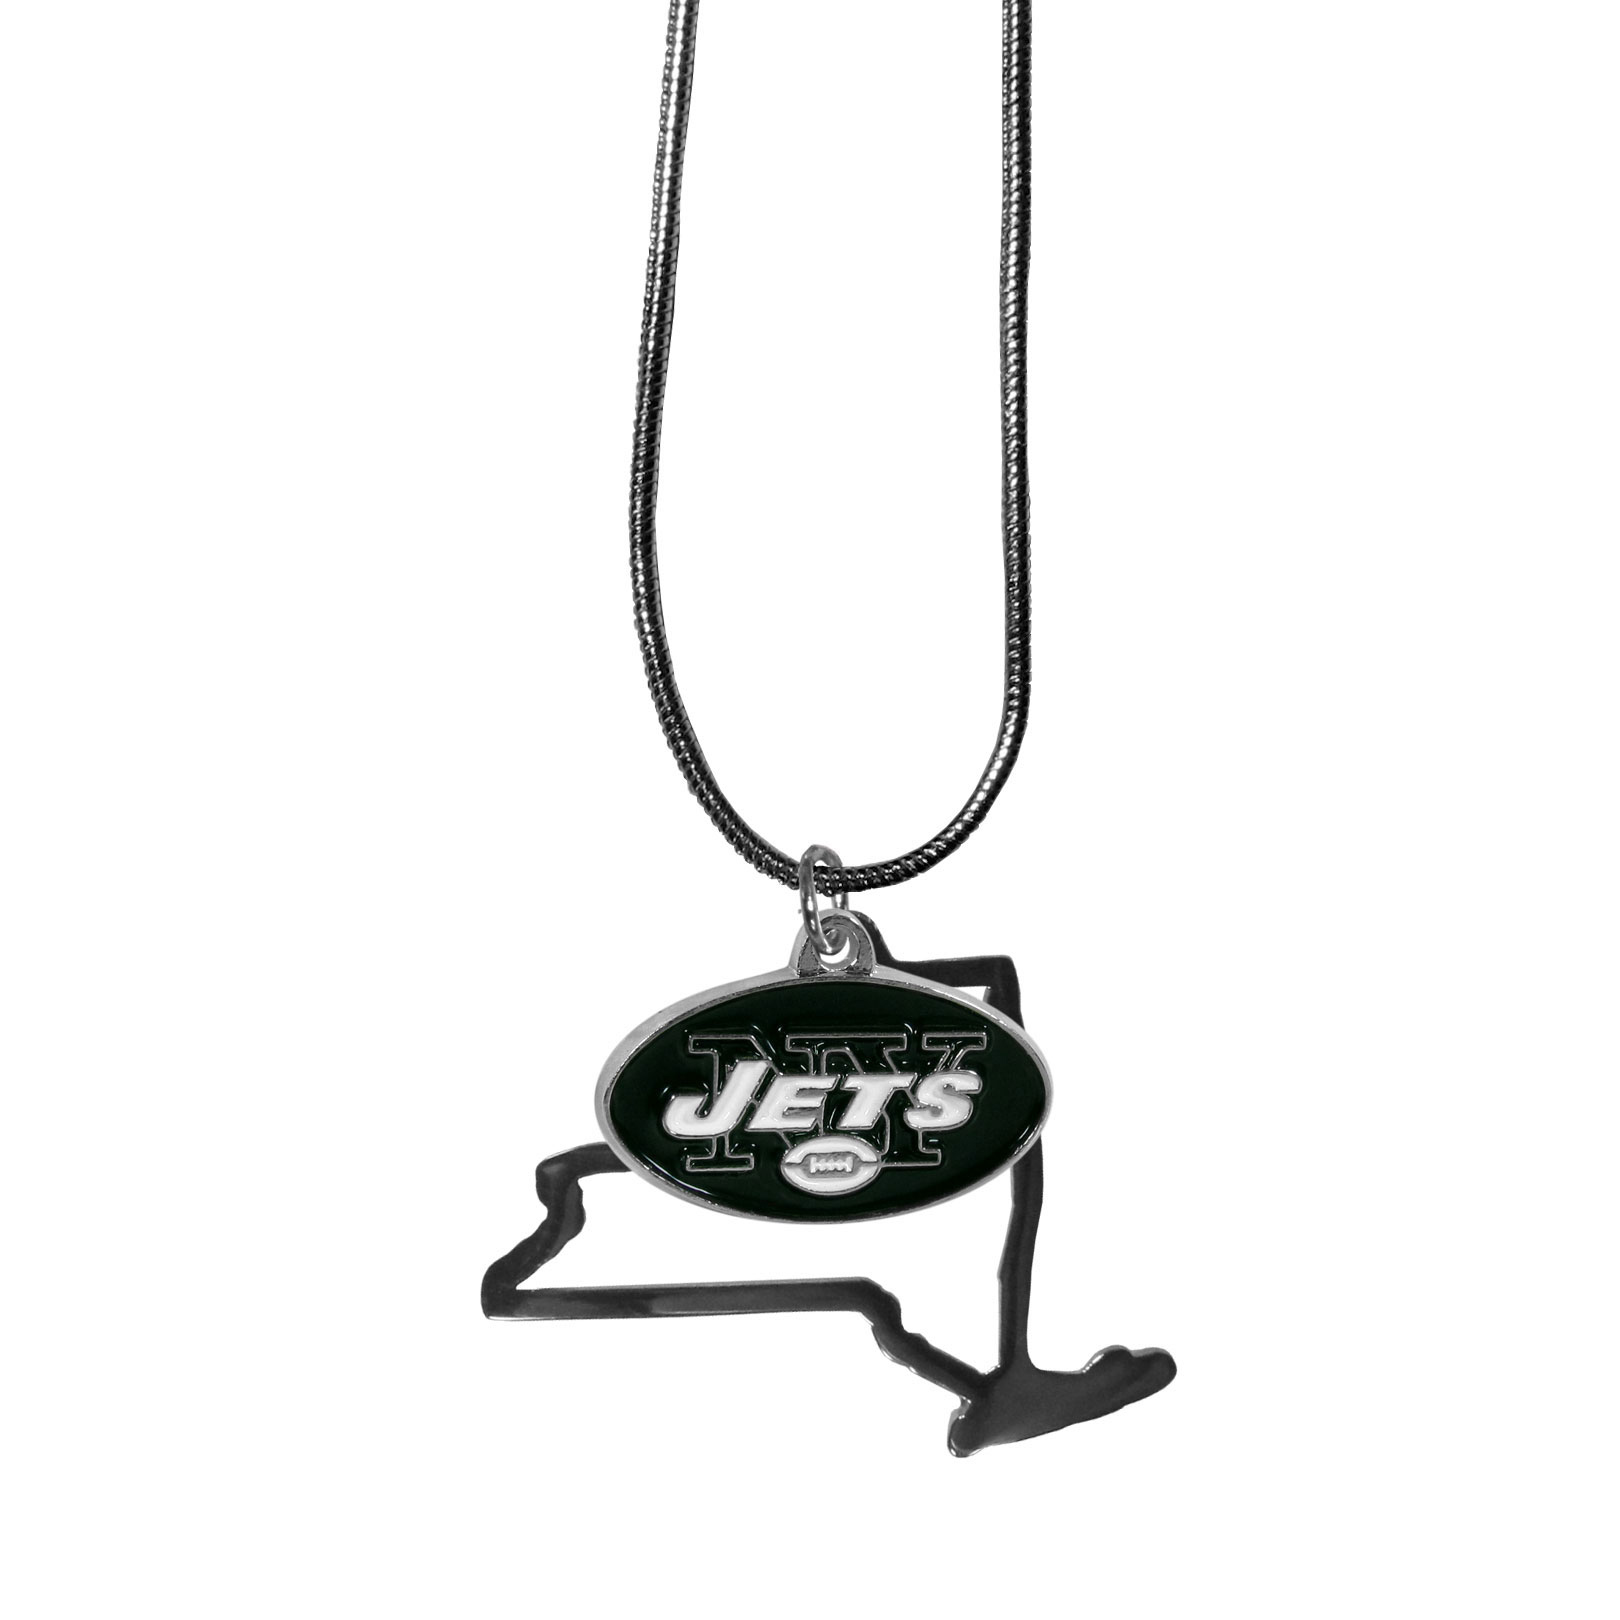 New York Jets State Charm Necklace - Get in on the trend! State themes are a trend that just keeps getting more popular and these necklaces take the state style and give it a sporty twist with a New York Jets added to the state outline charm. The come on a snake chain that is 22 inches long.